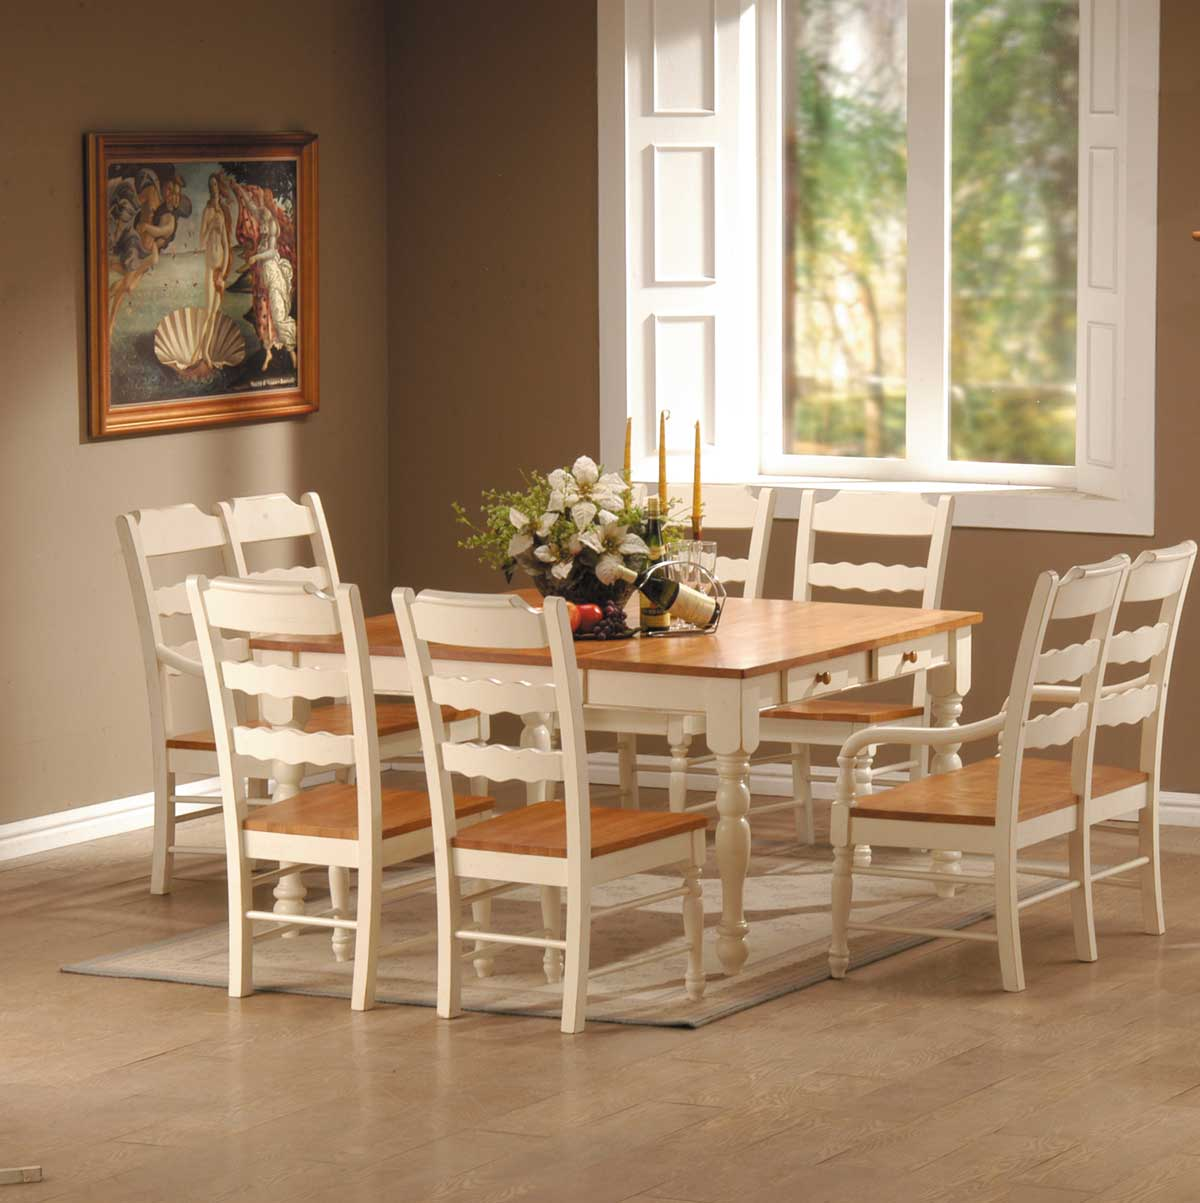 Homelegance Sedgefield Dining Table with Drawers in White  : 751W from www.homelement.com size 1200 x 1203 jpeg 92kB